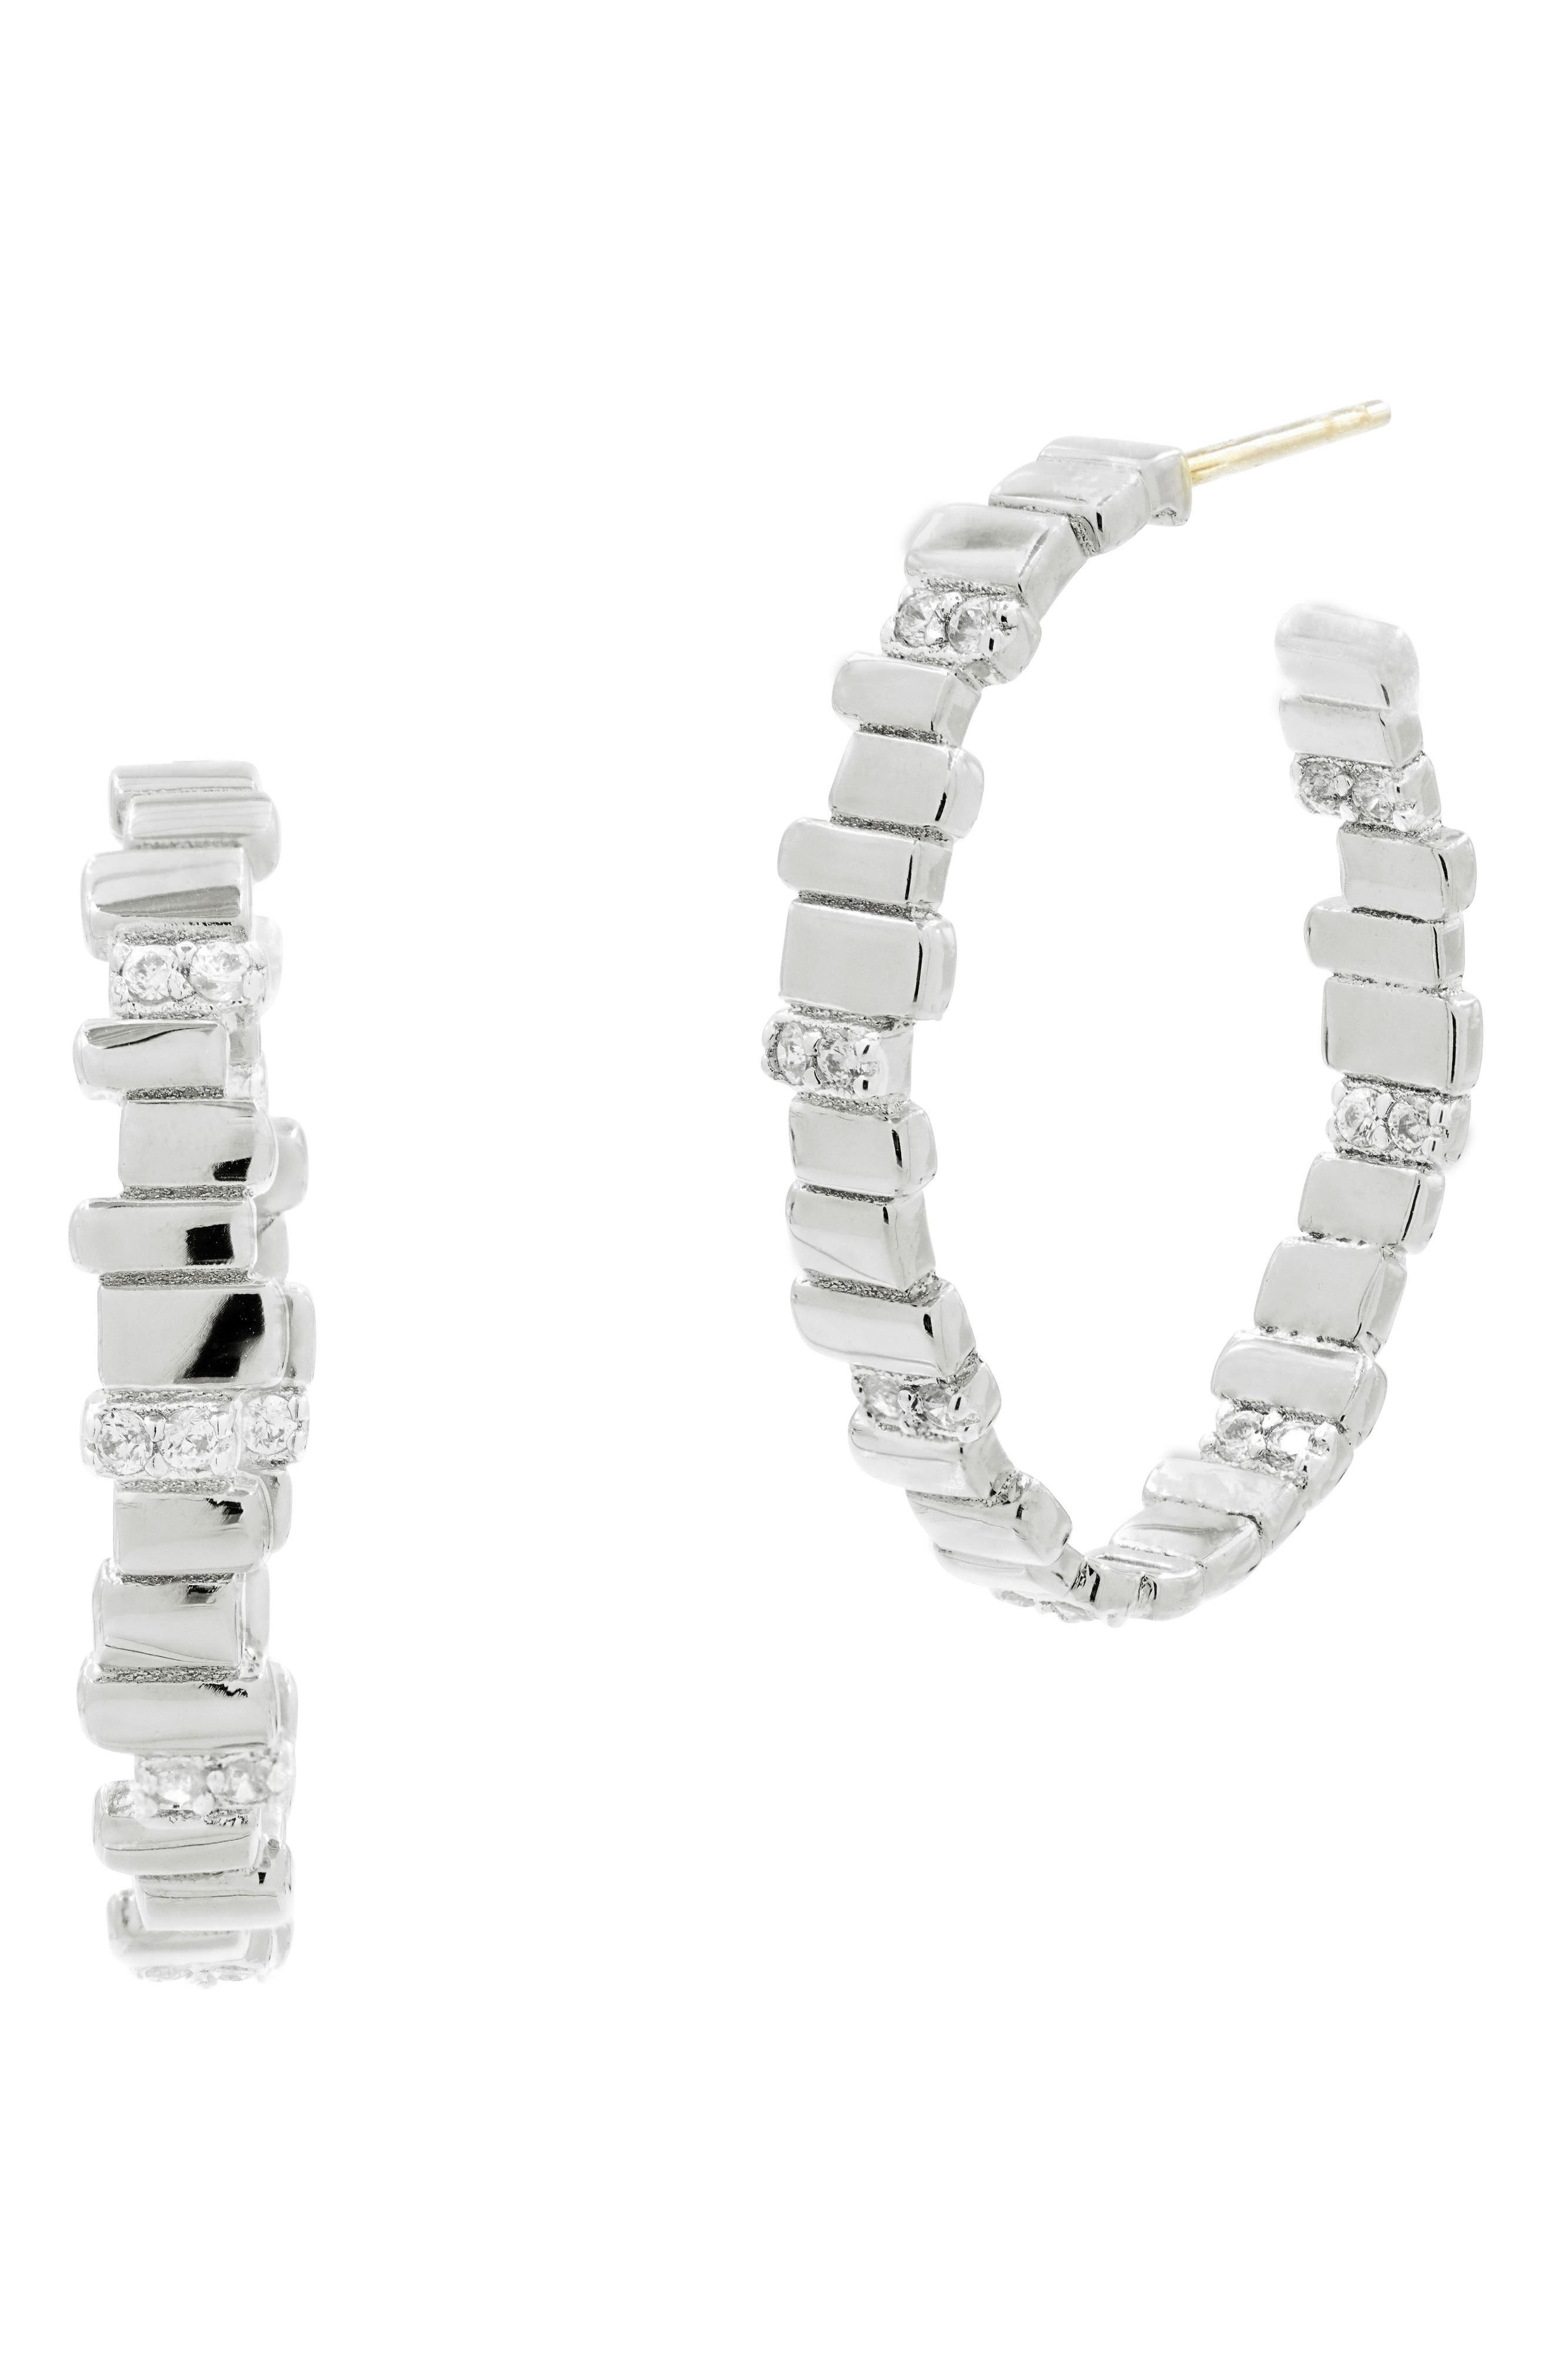 Radiance Cubic Zirconia Hoop Earrings,                             Main thumbnail 1, color,                             SILVER